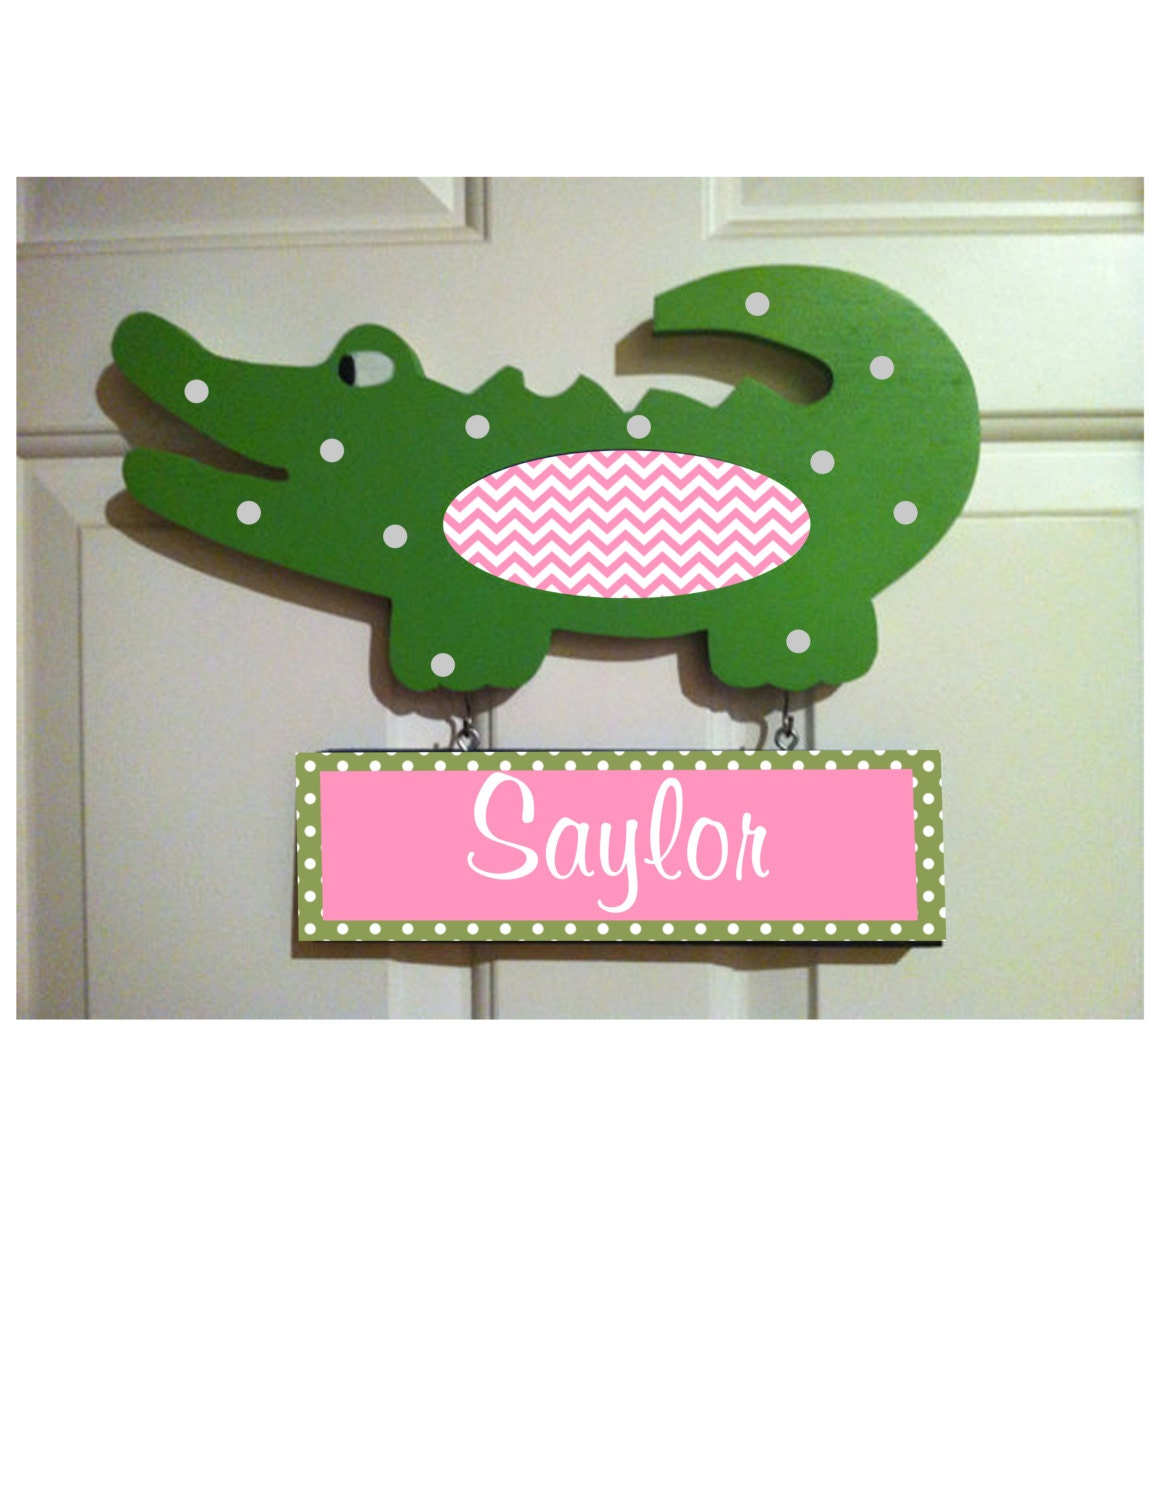 Alligator Nursery Alligator Room Decor Alligator By. Hotel Banquet Rooms For Rent. Myrtle Beach Rooms. Macys Dining Room. Hawaiian Decor. Carpet For Dining Room. Breast Cancer Awareness Decorations Ideas. Monogram Letters Wall Decor. Set Of 4 Dining Room Chairs